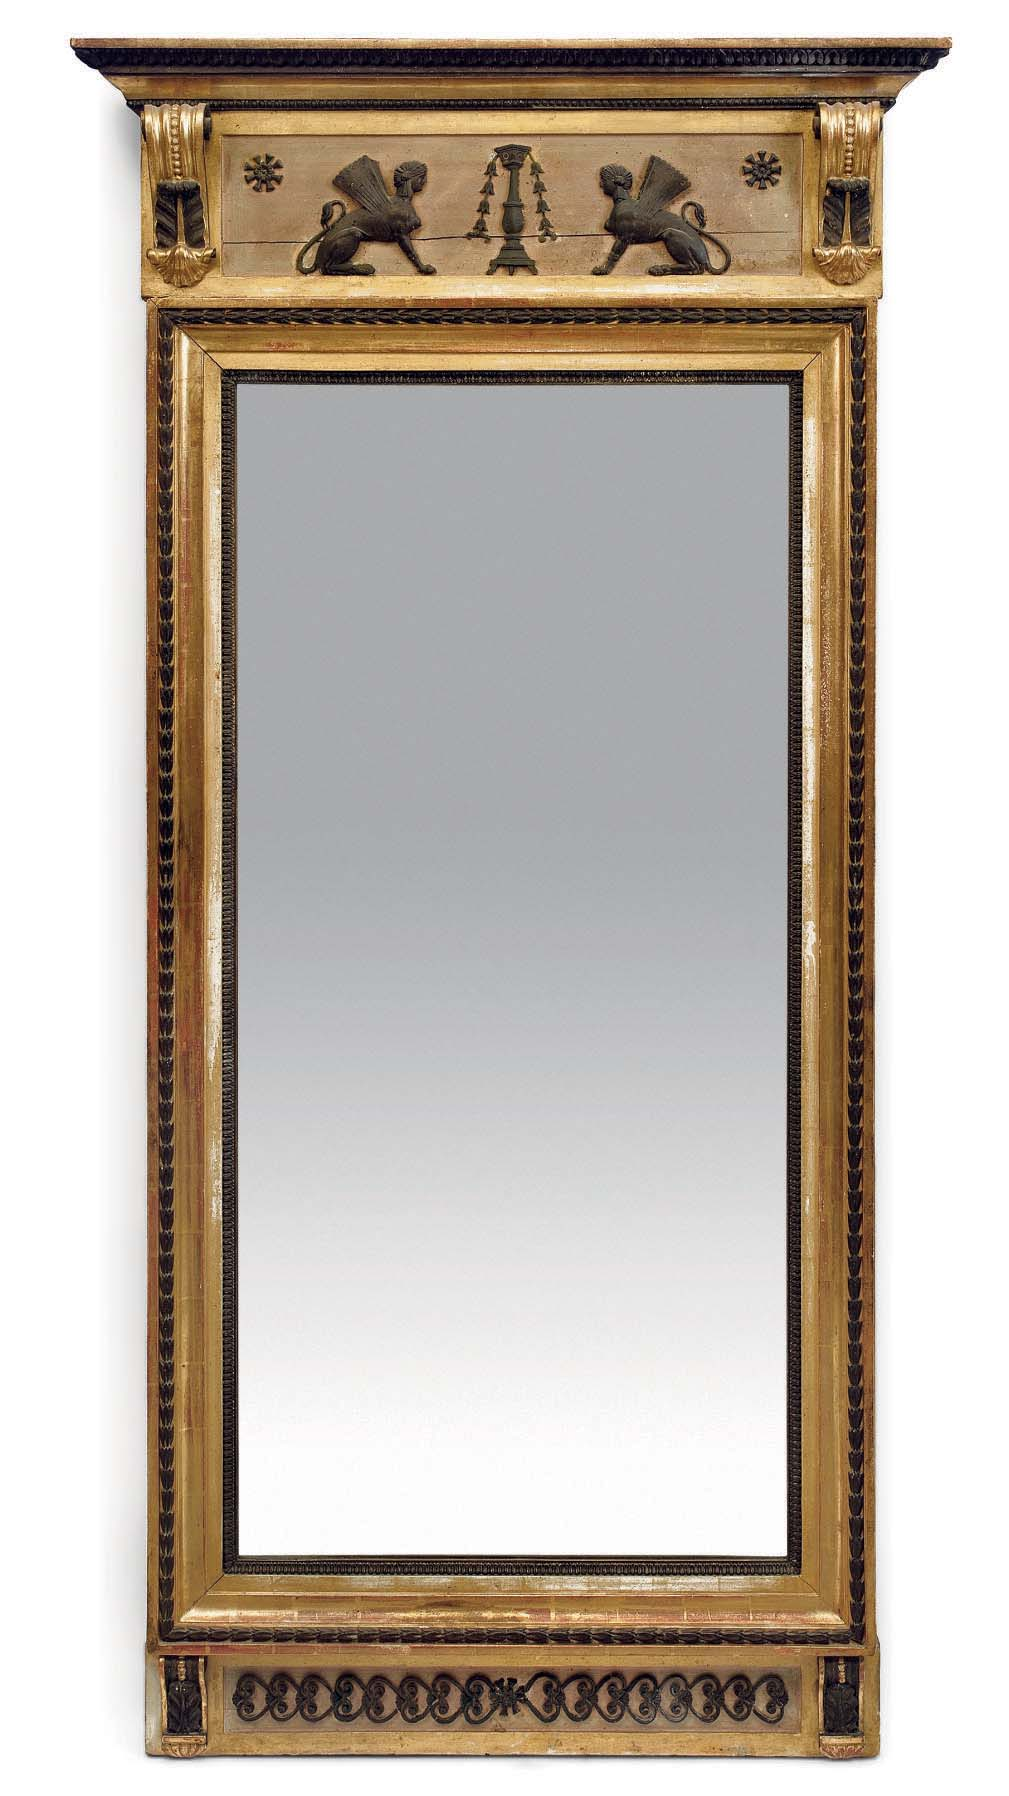 A SWEDISH BRONZED AND GILTWOOD MIRROR